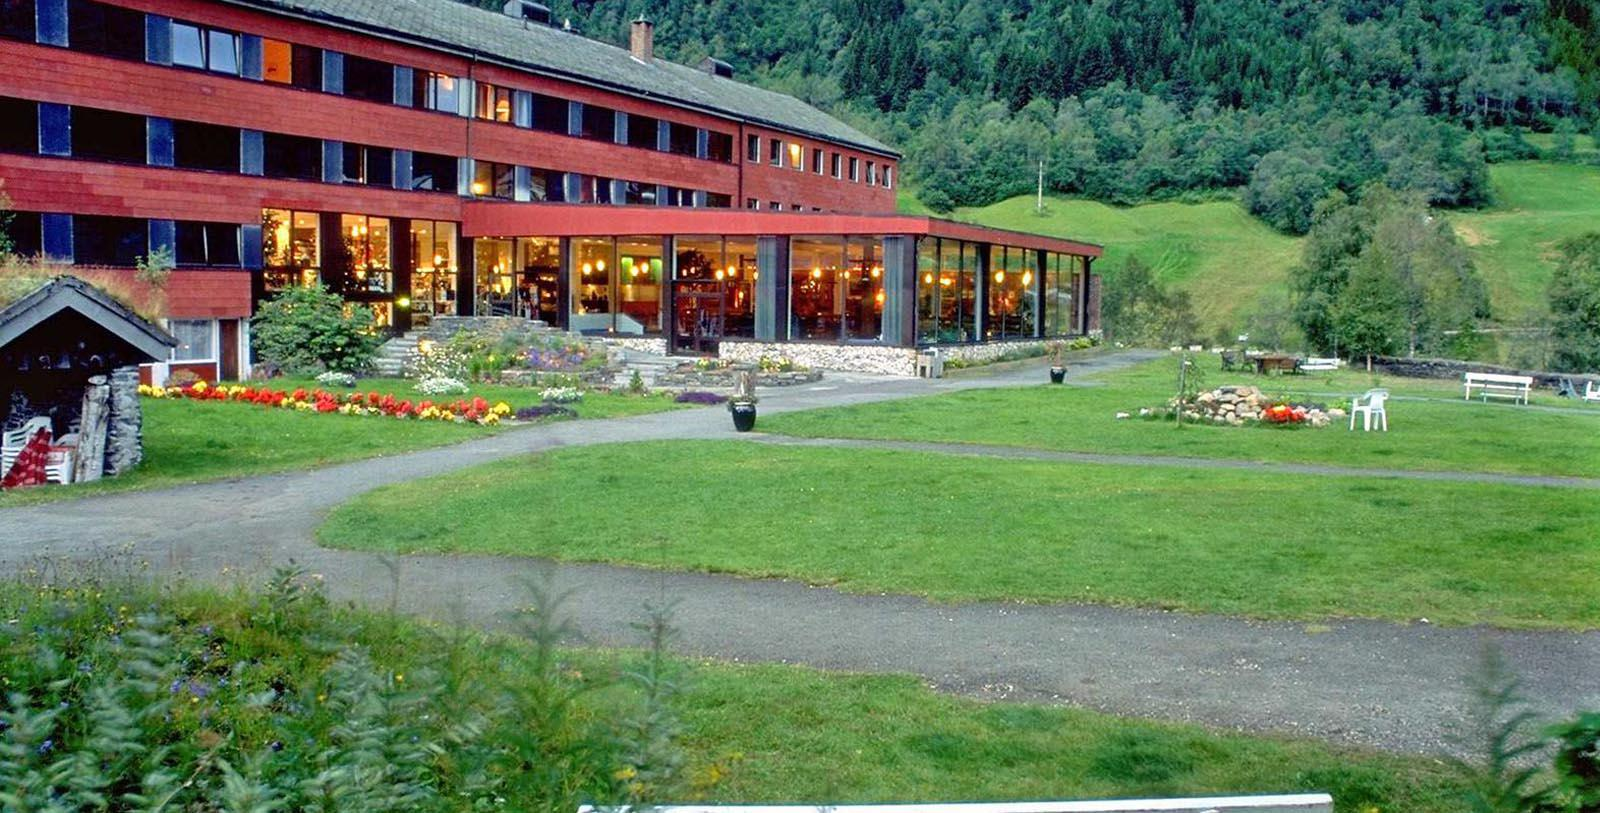 Image of Hotel Exterior Stalheim Hotel, 1750, Member of Historic Hotels Worldwide, in Stalheim, Norway, Discover